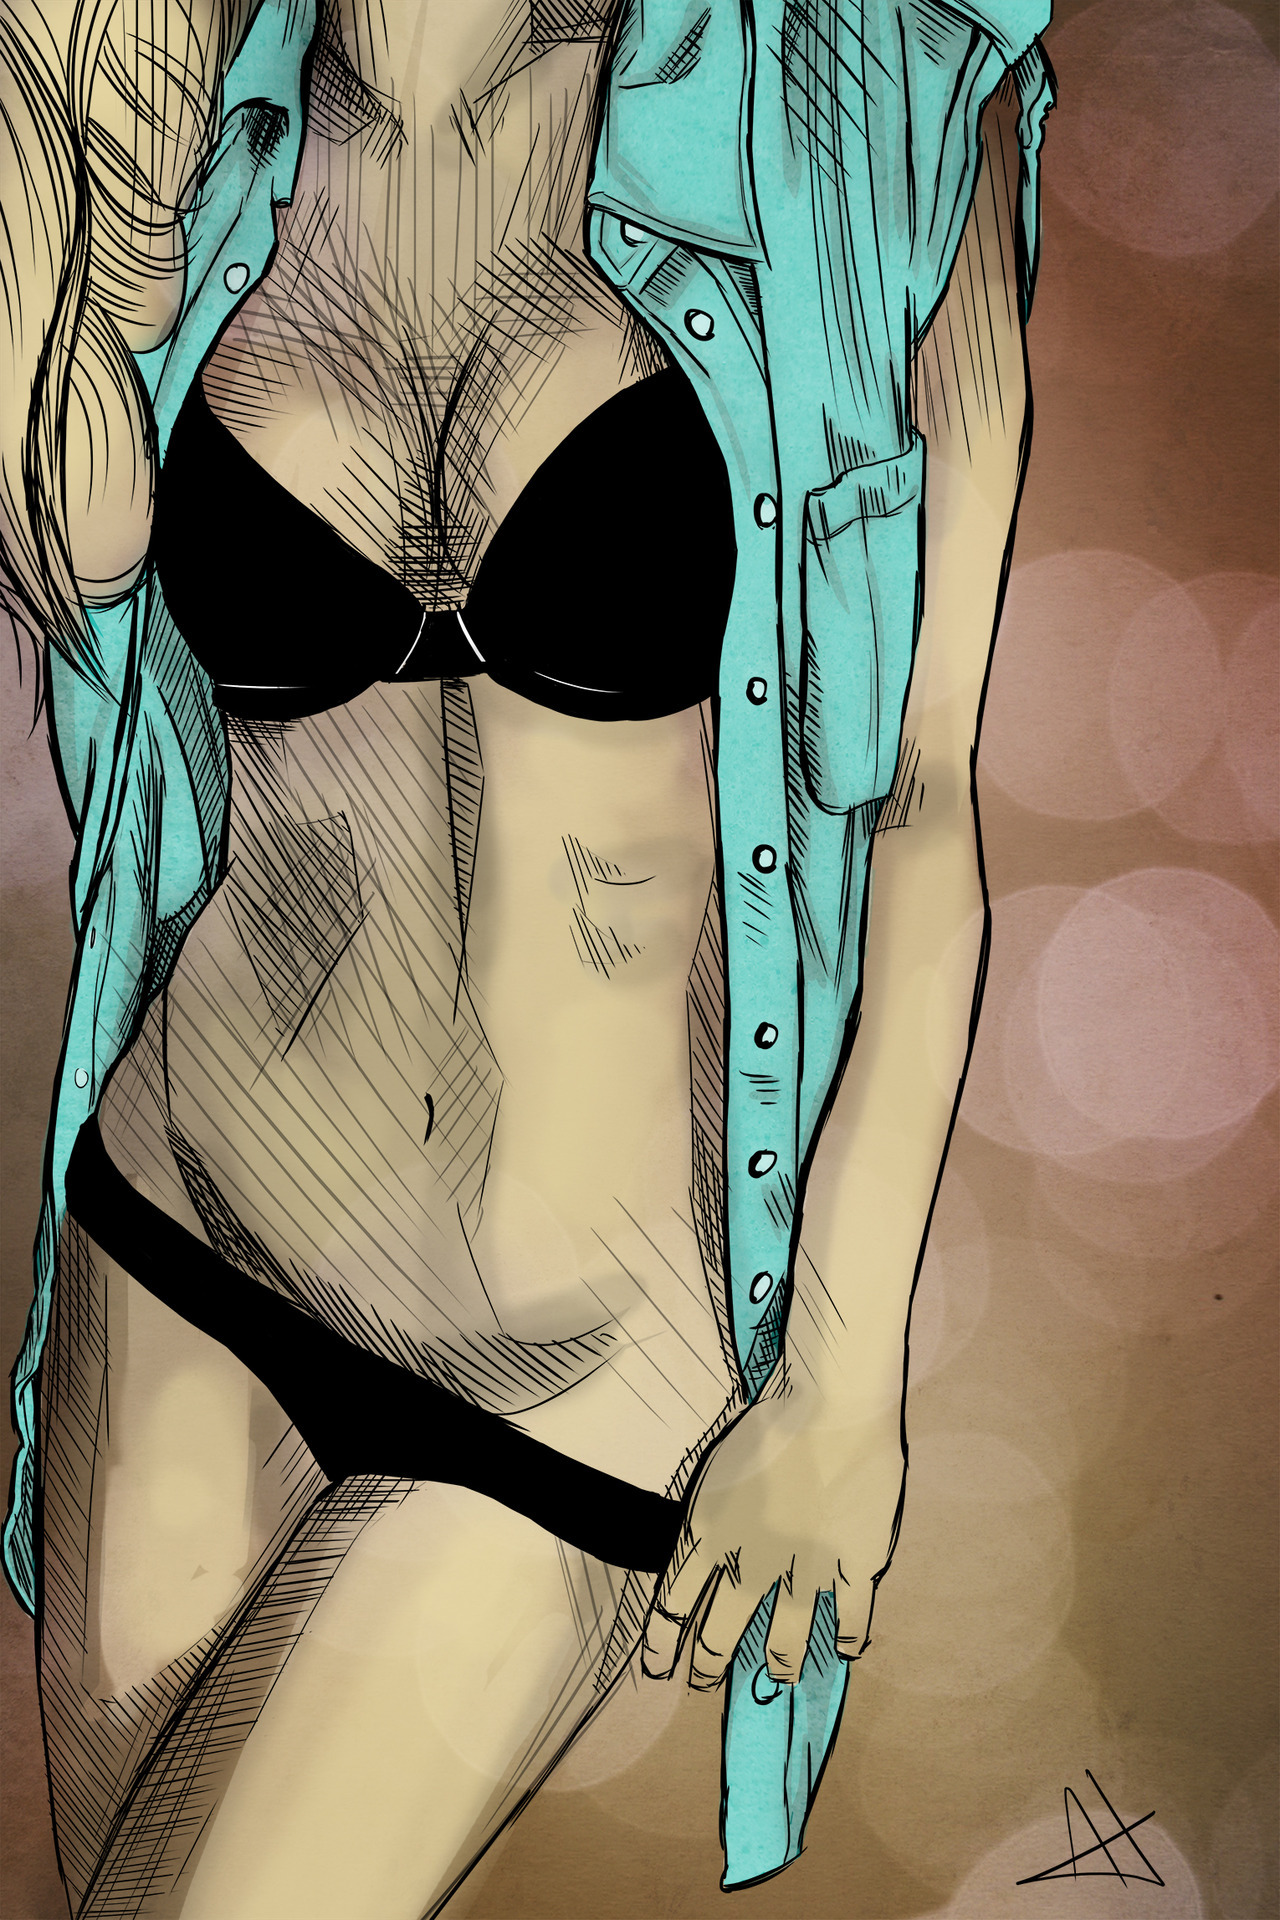 i-art-you:  Female Model's Torso.Sketch, cept it took me 2 hrs -__-Enjoy :)